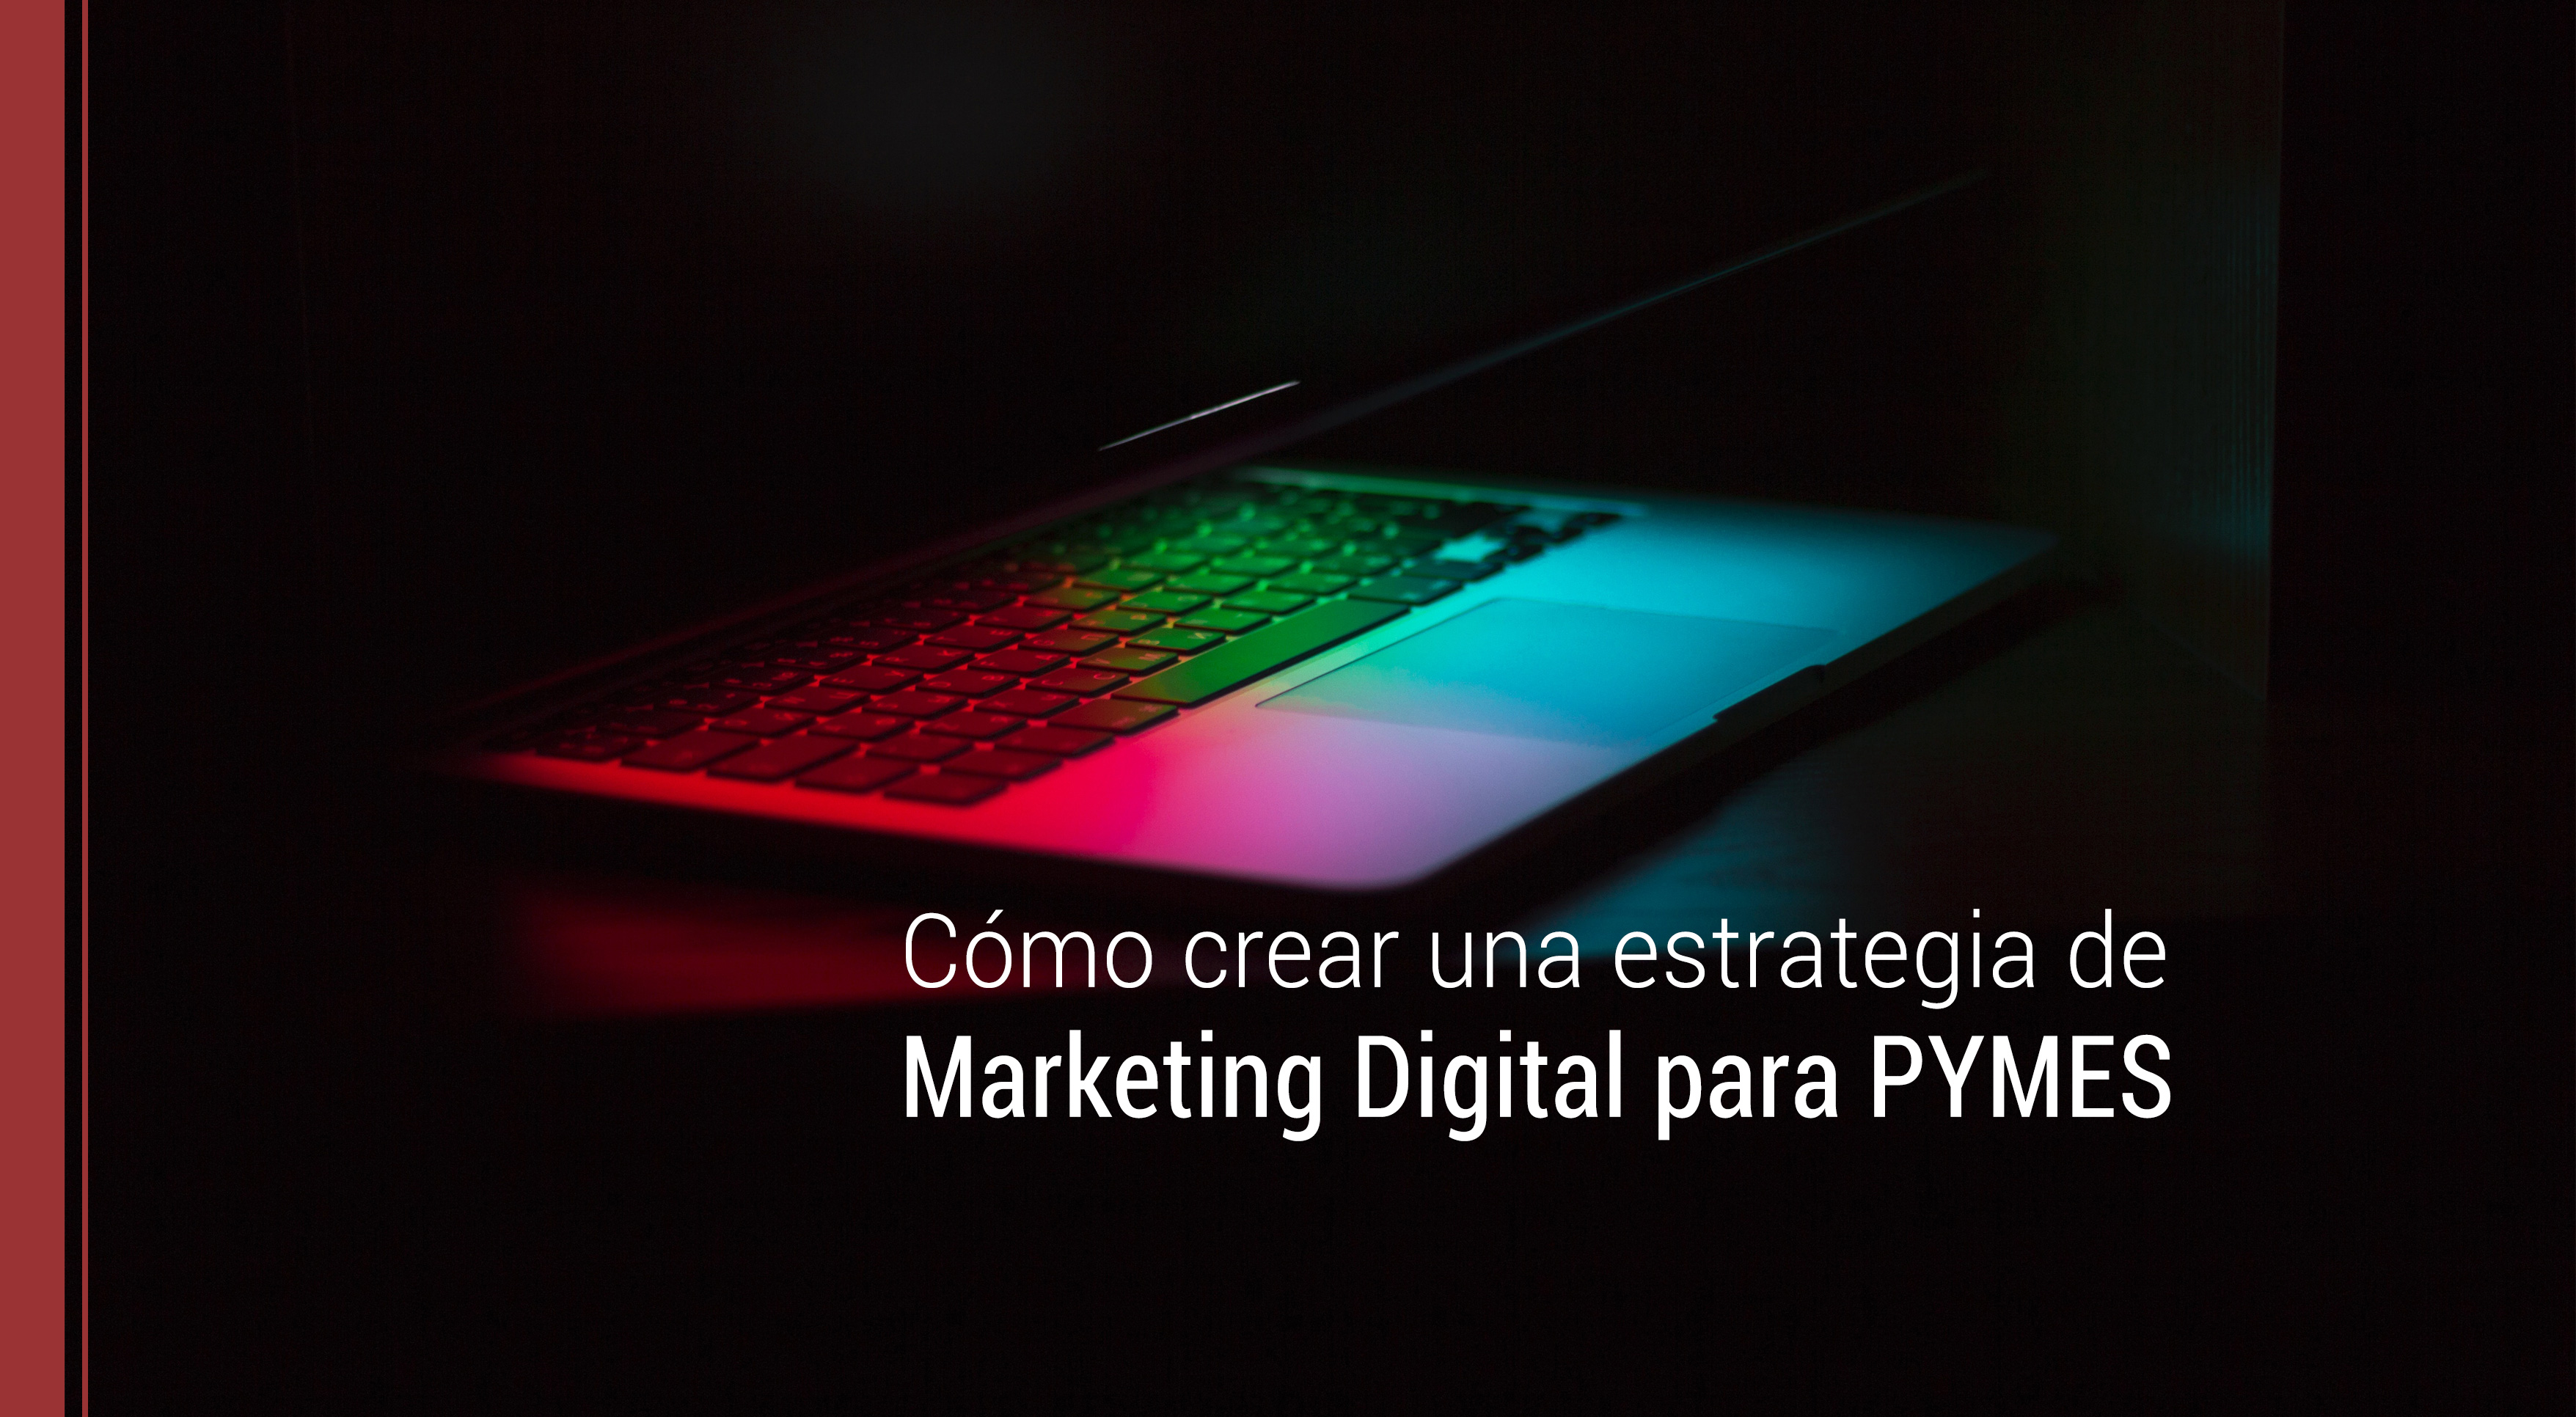 estrategia de marketing digital para pymes